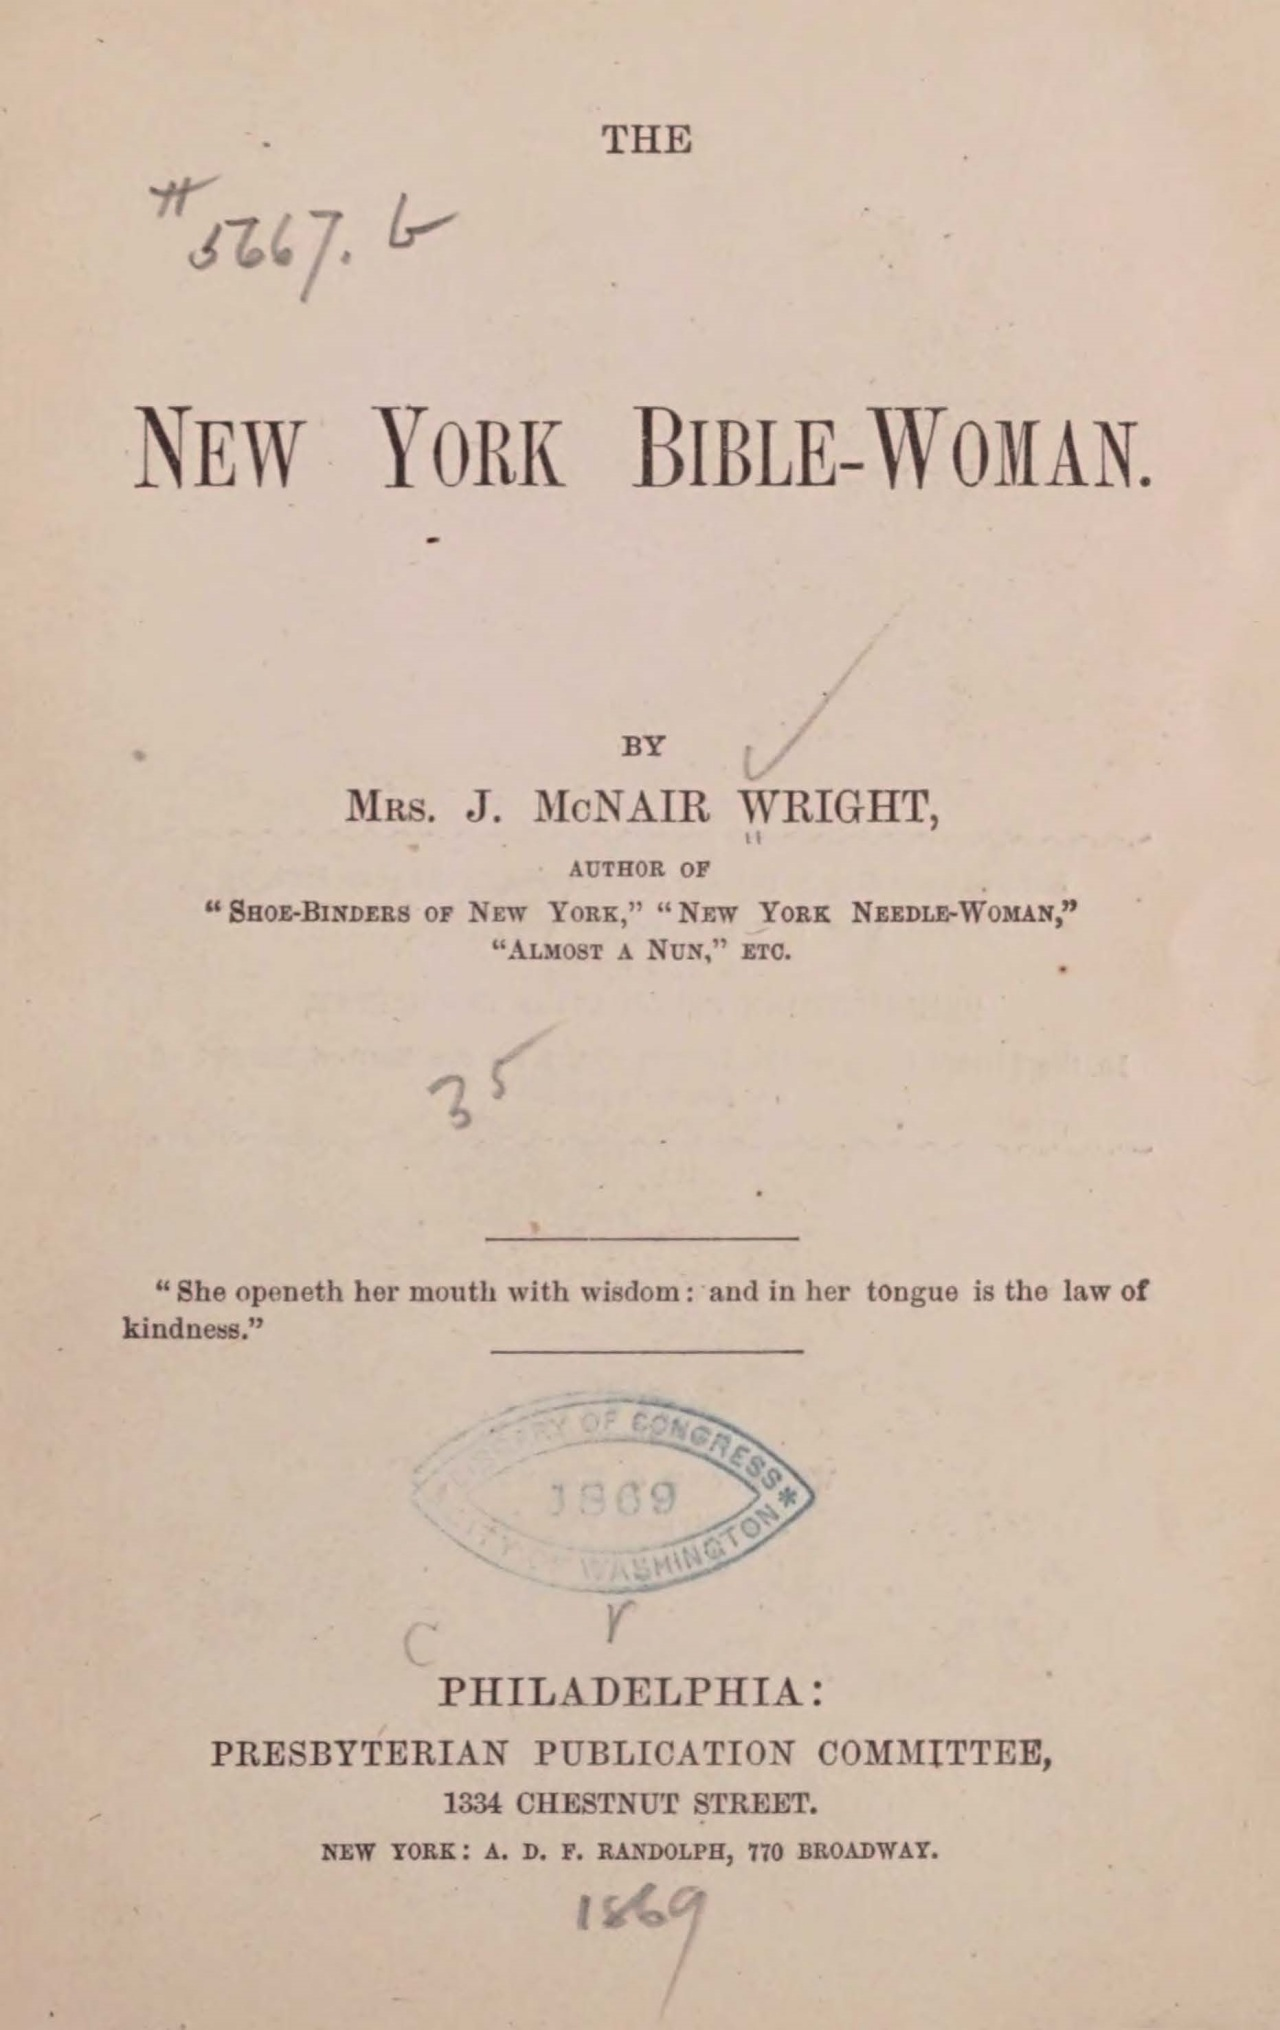 Wright, Julia McNair, The New York Bible-Woman Title Page.jpg